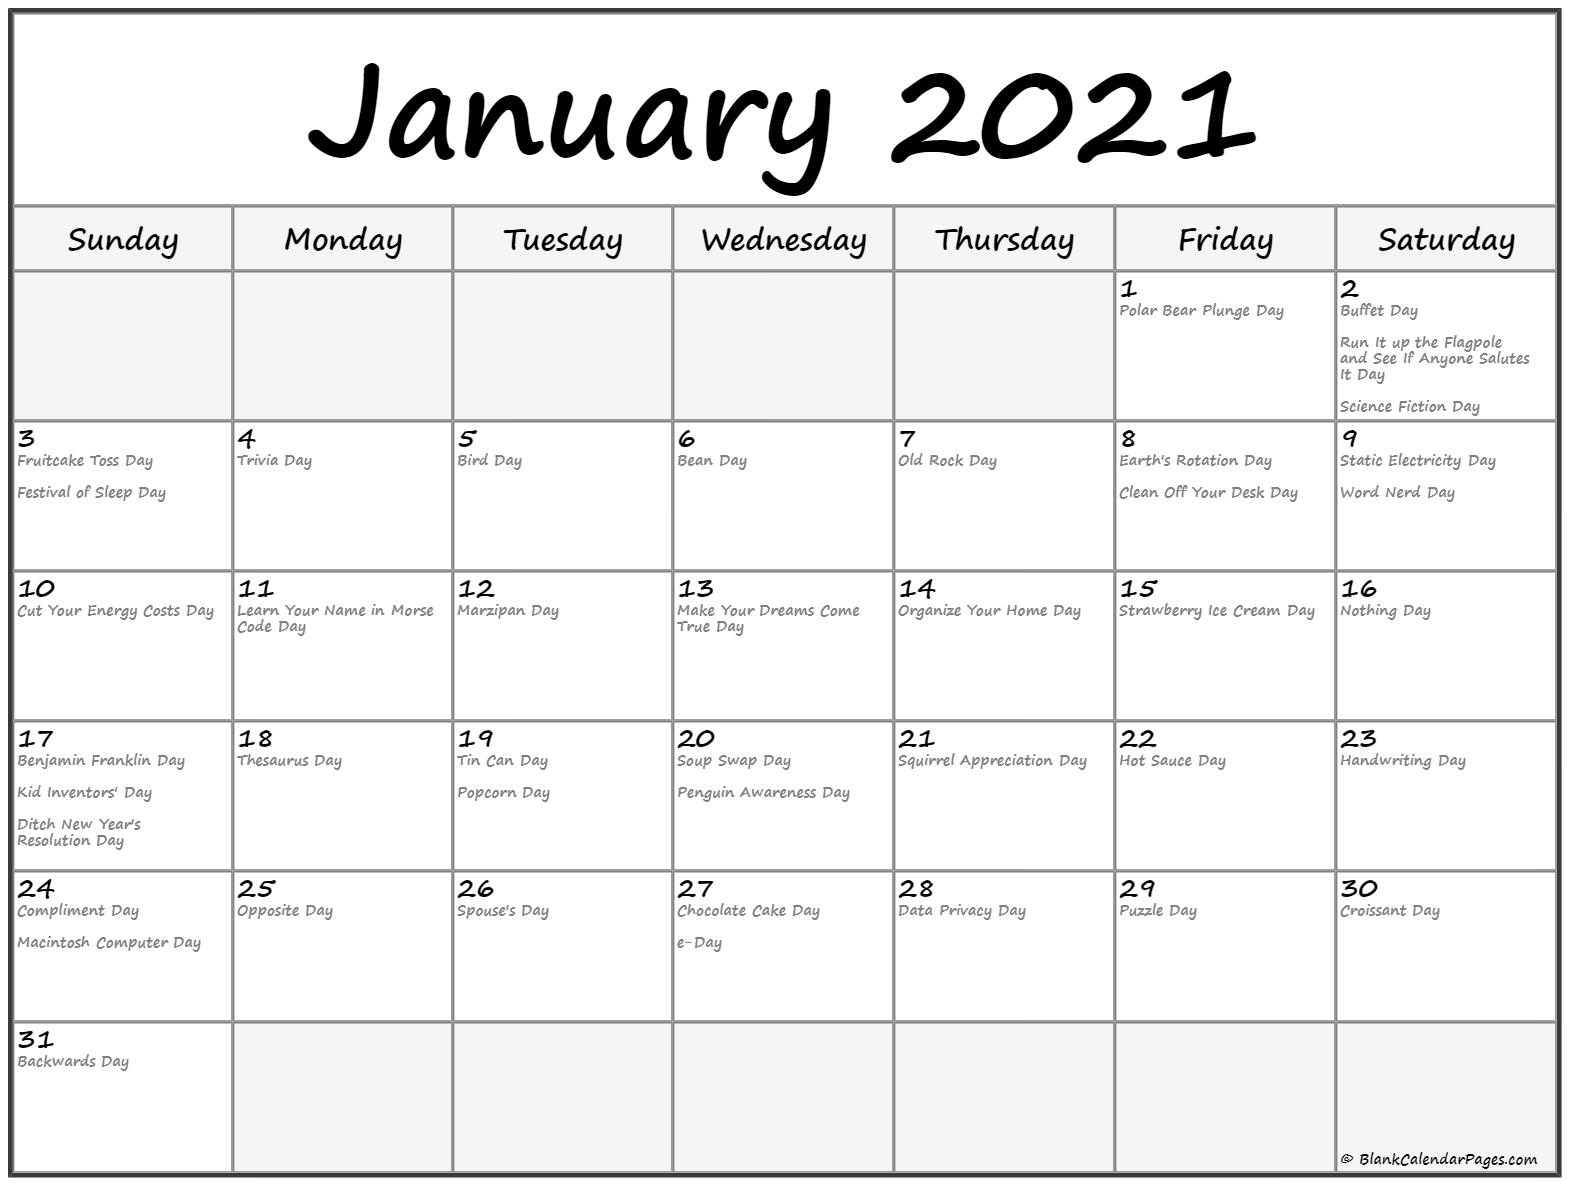 January 2021 Calendar With Holidays with regard to Printable National Day Calendar 2021